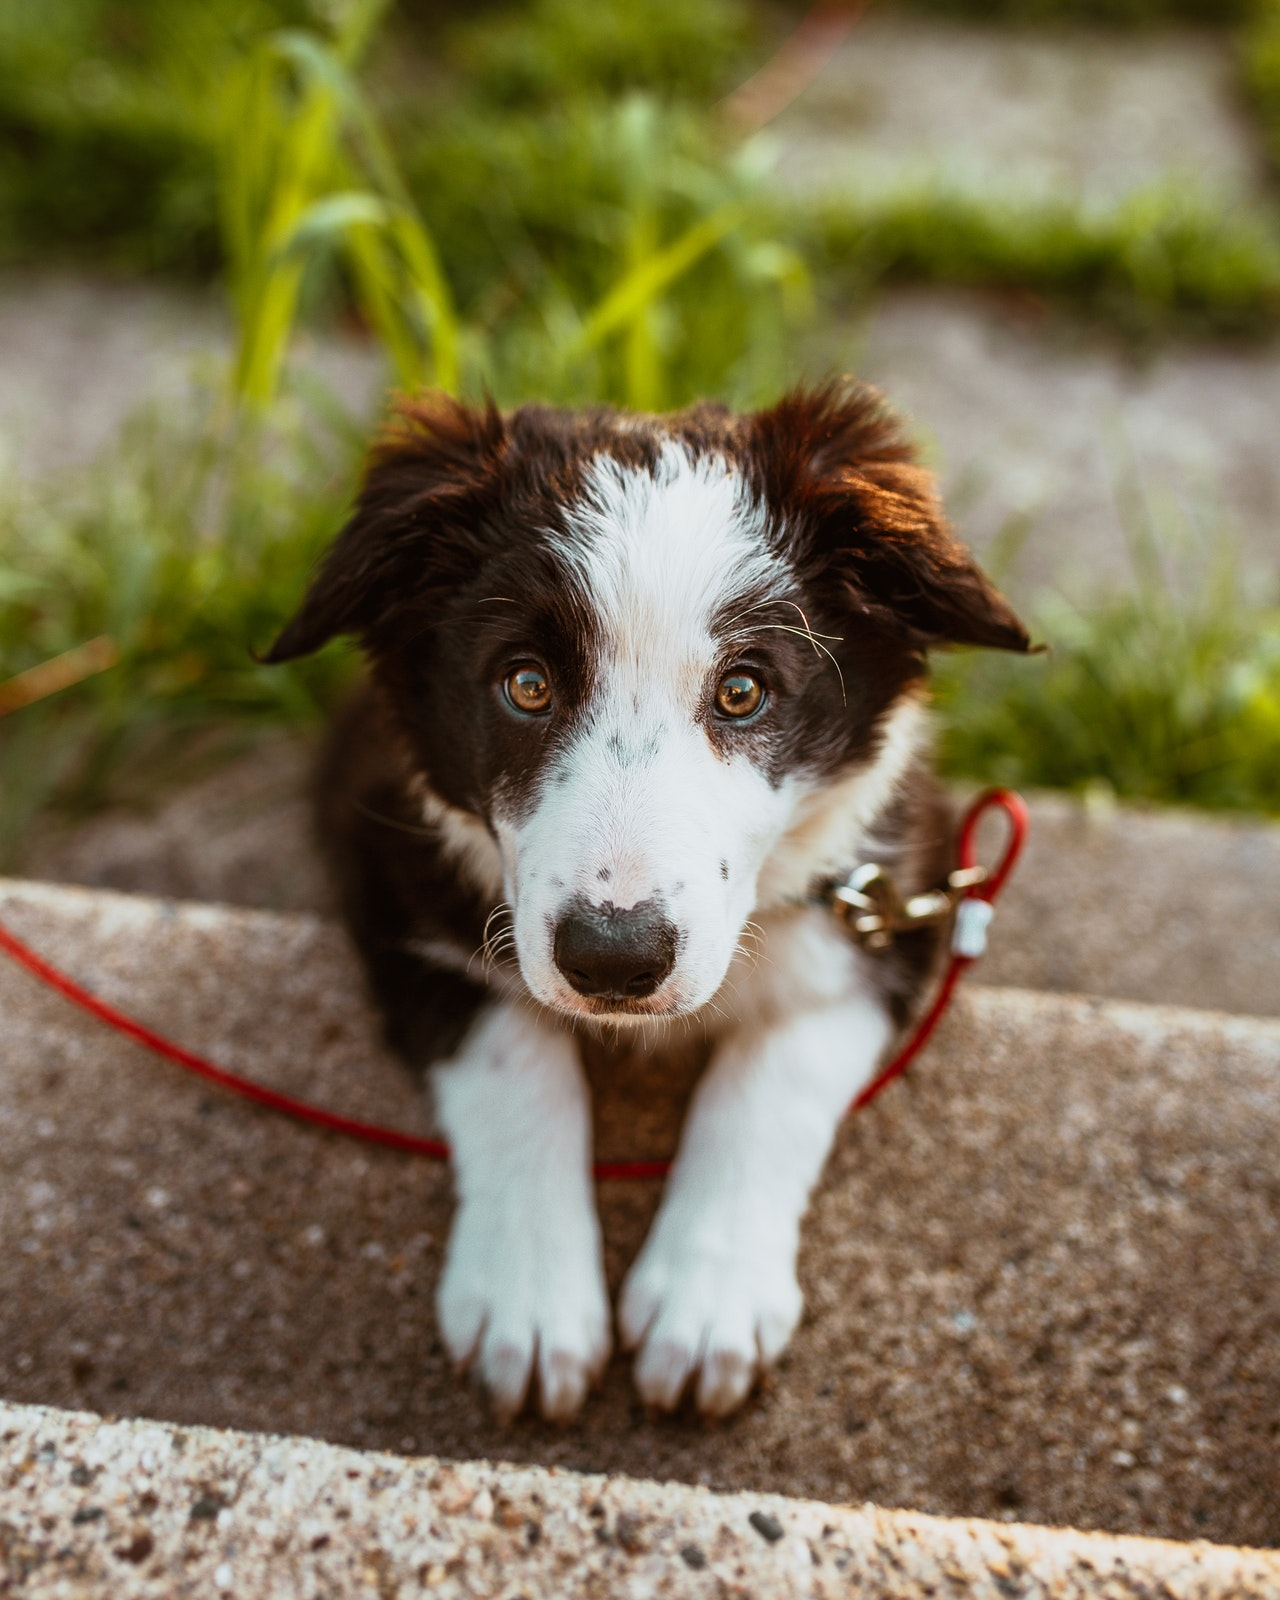 5 Tips to Provide Lifelong Care for Your Dog